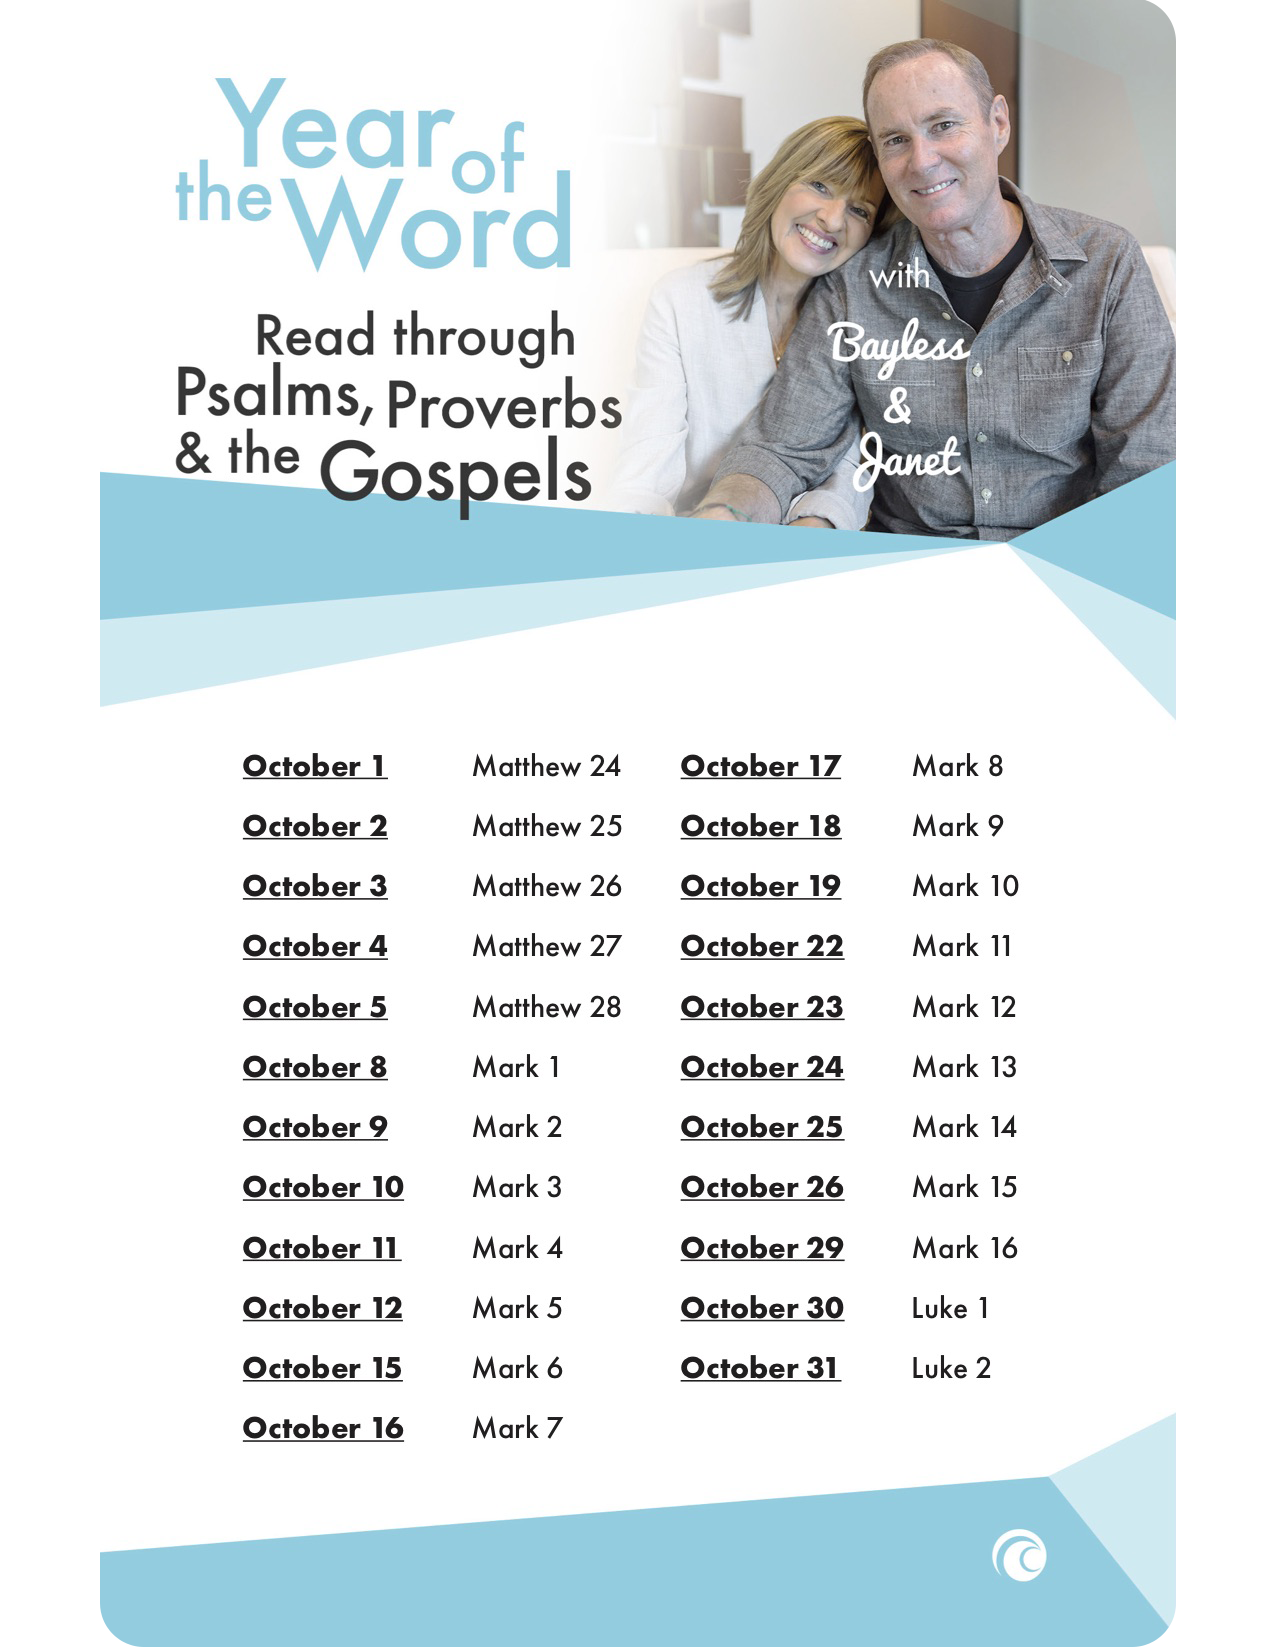 YOTW October Psalms, Proverbs, and Gospels